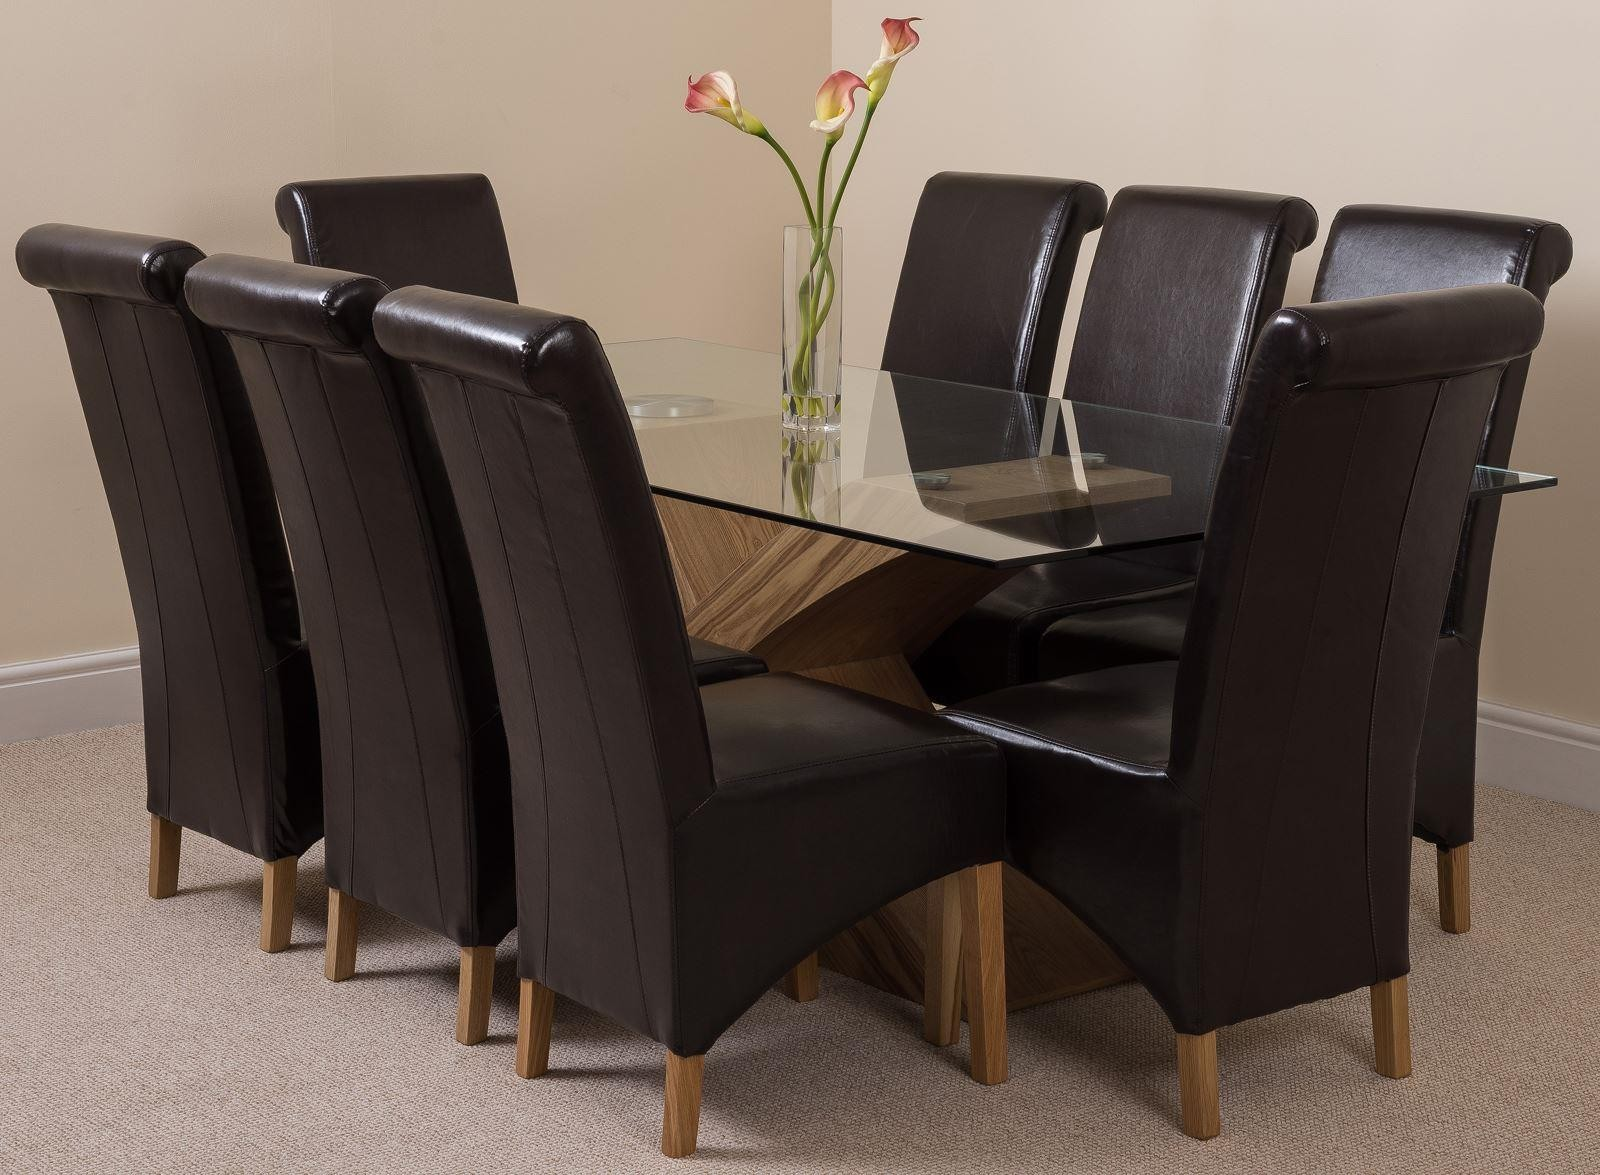 Valencia Oak 200cm Wood and Glass Dining Table with 8 Montana Dining Chairs [Brown Leather]